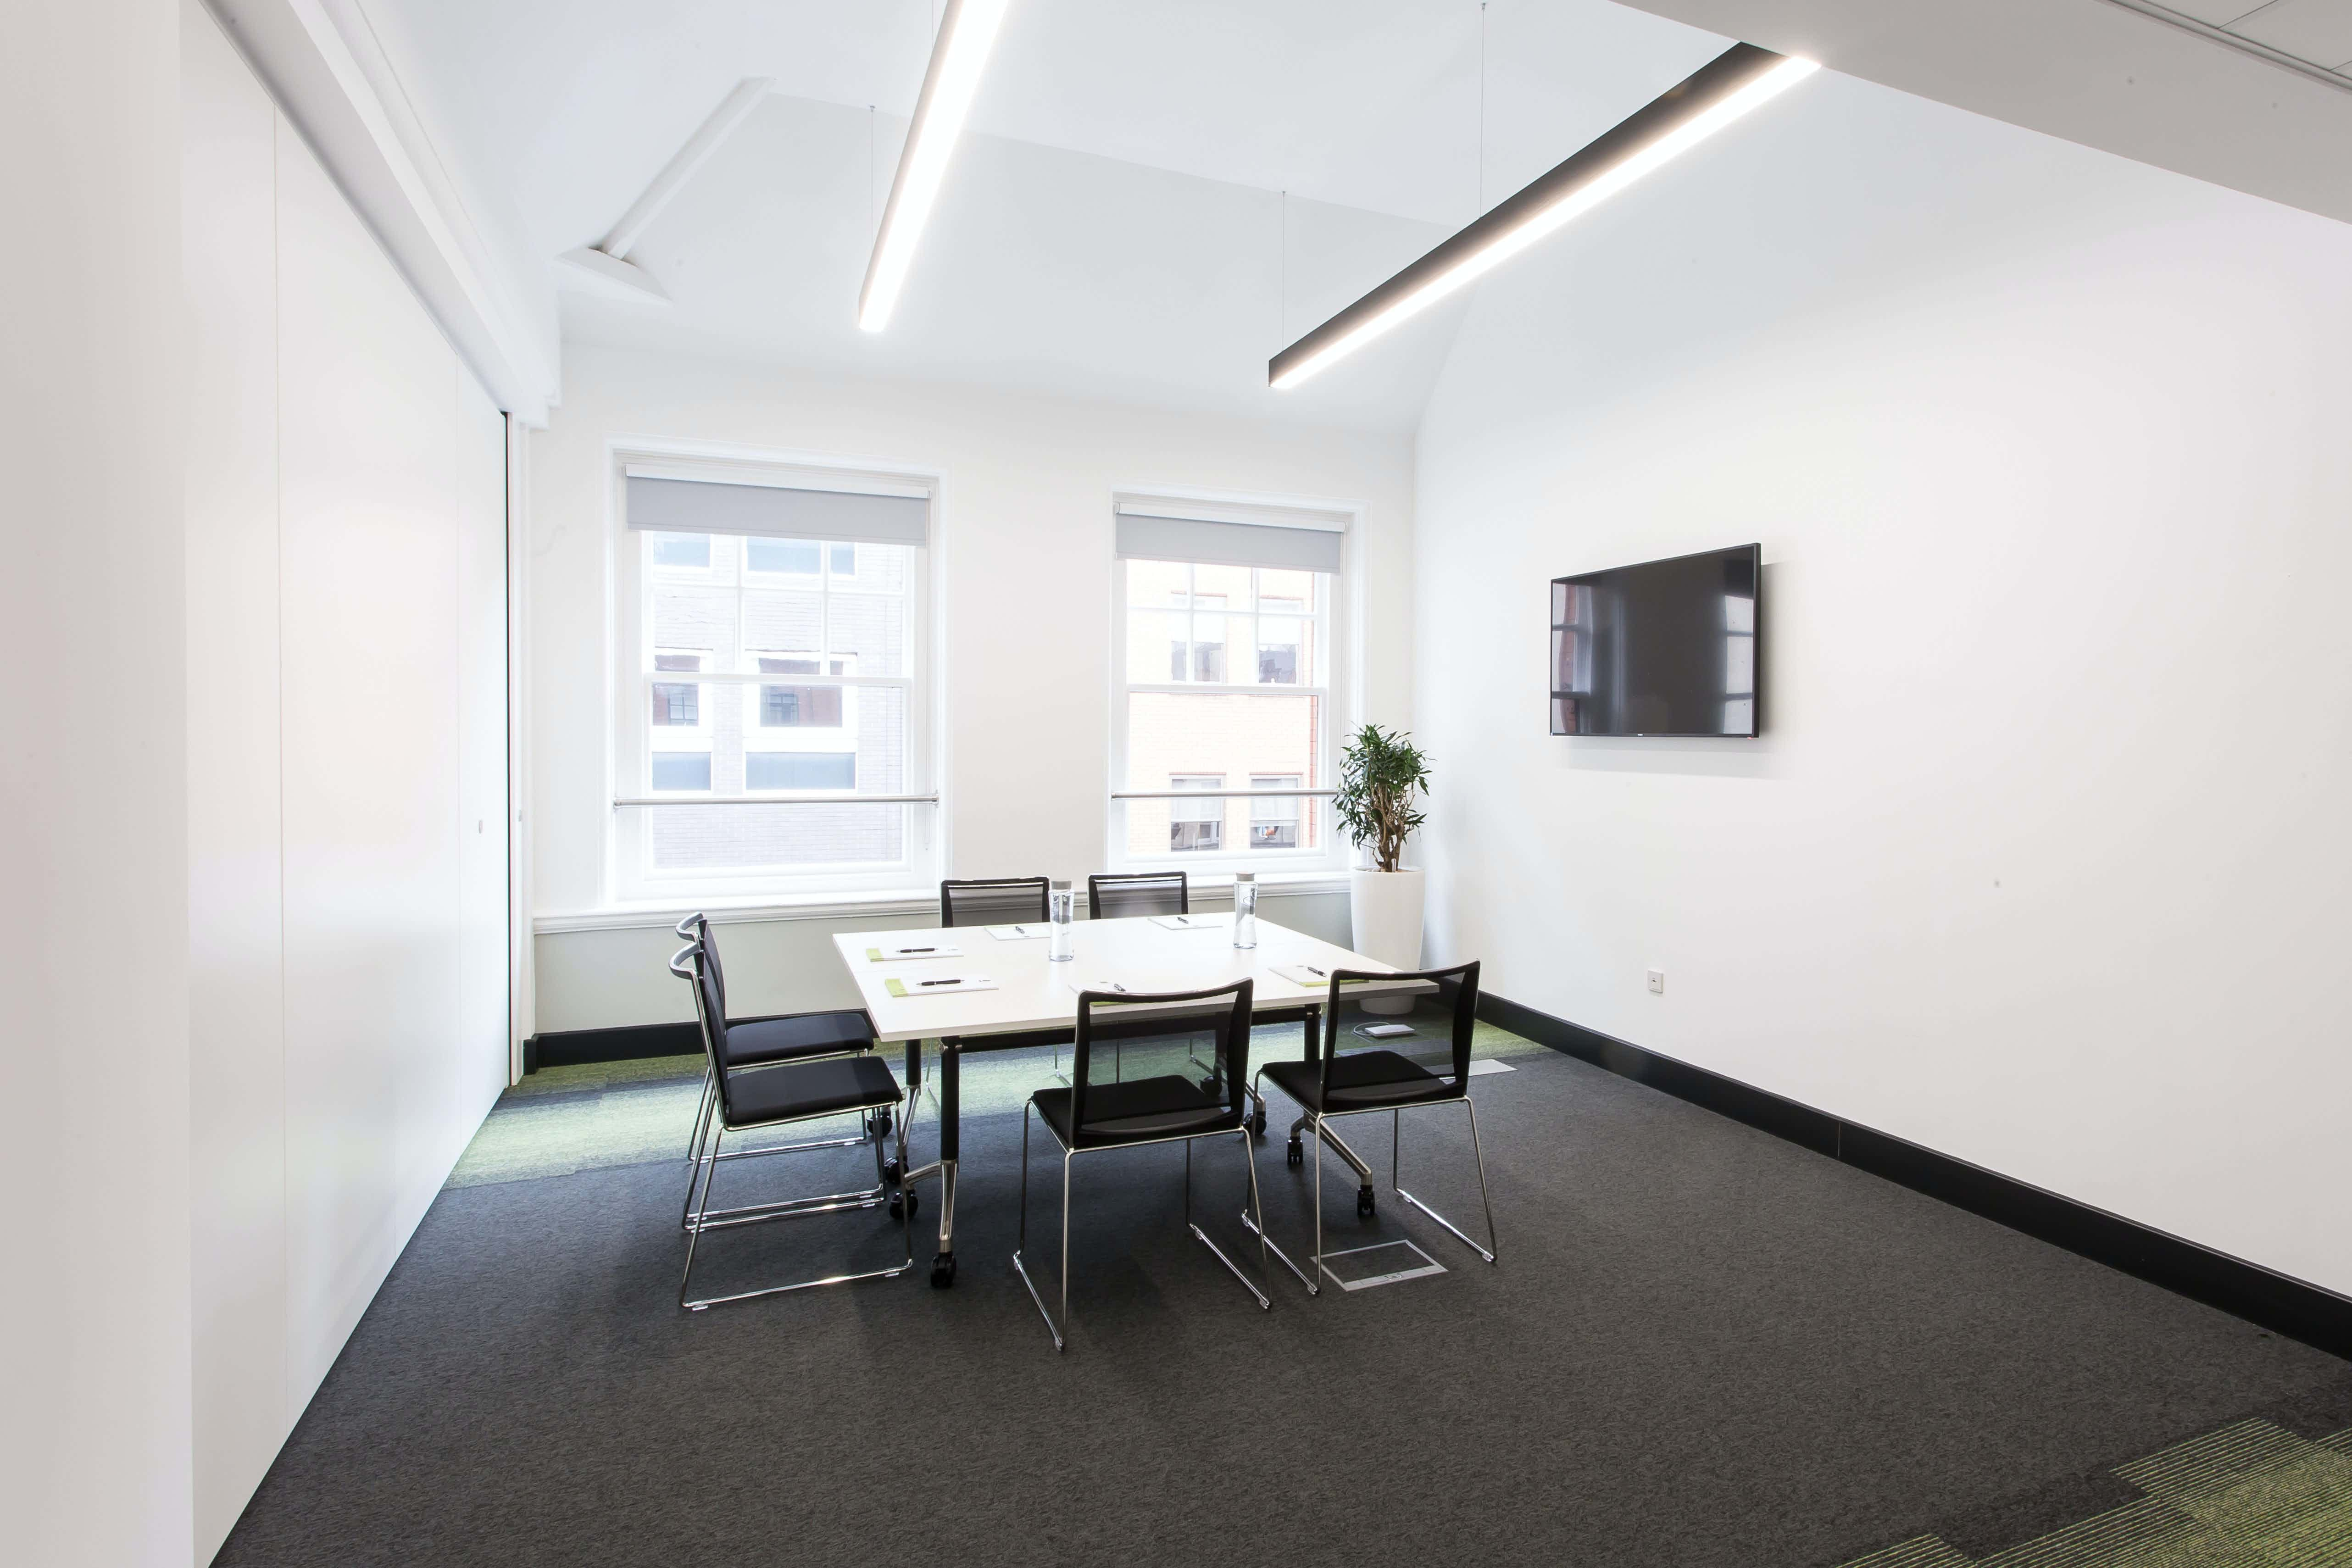 Gaskell Room A, Chamber Space